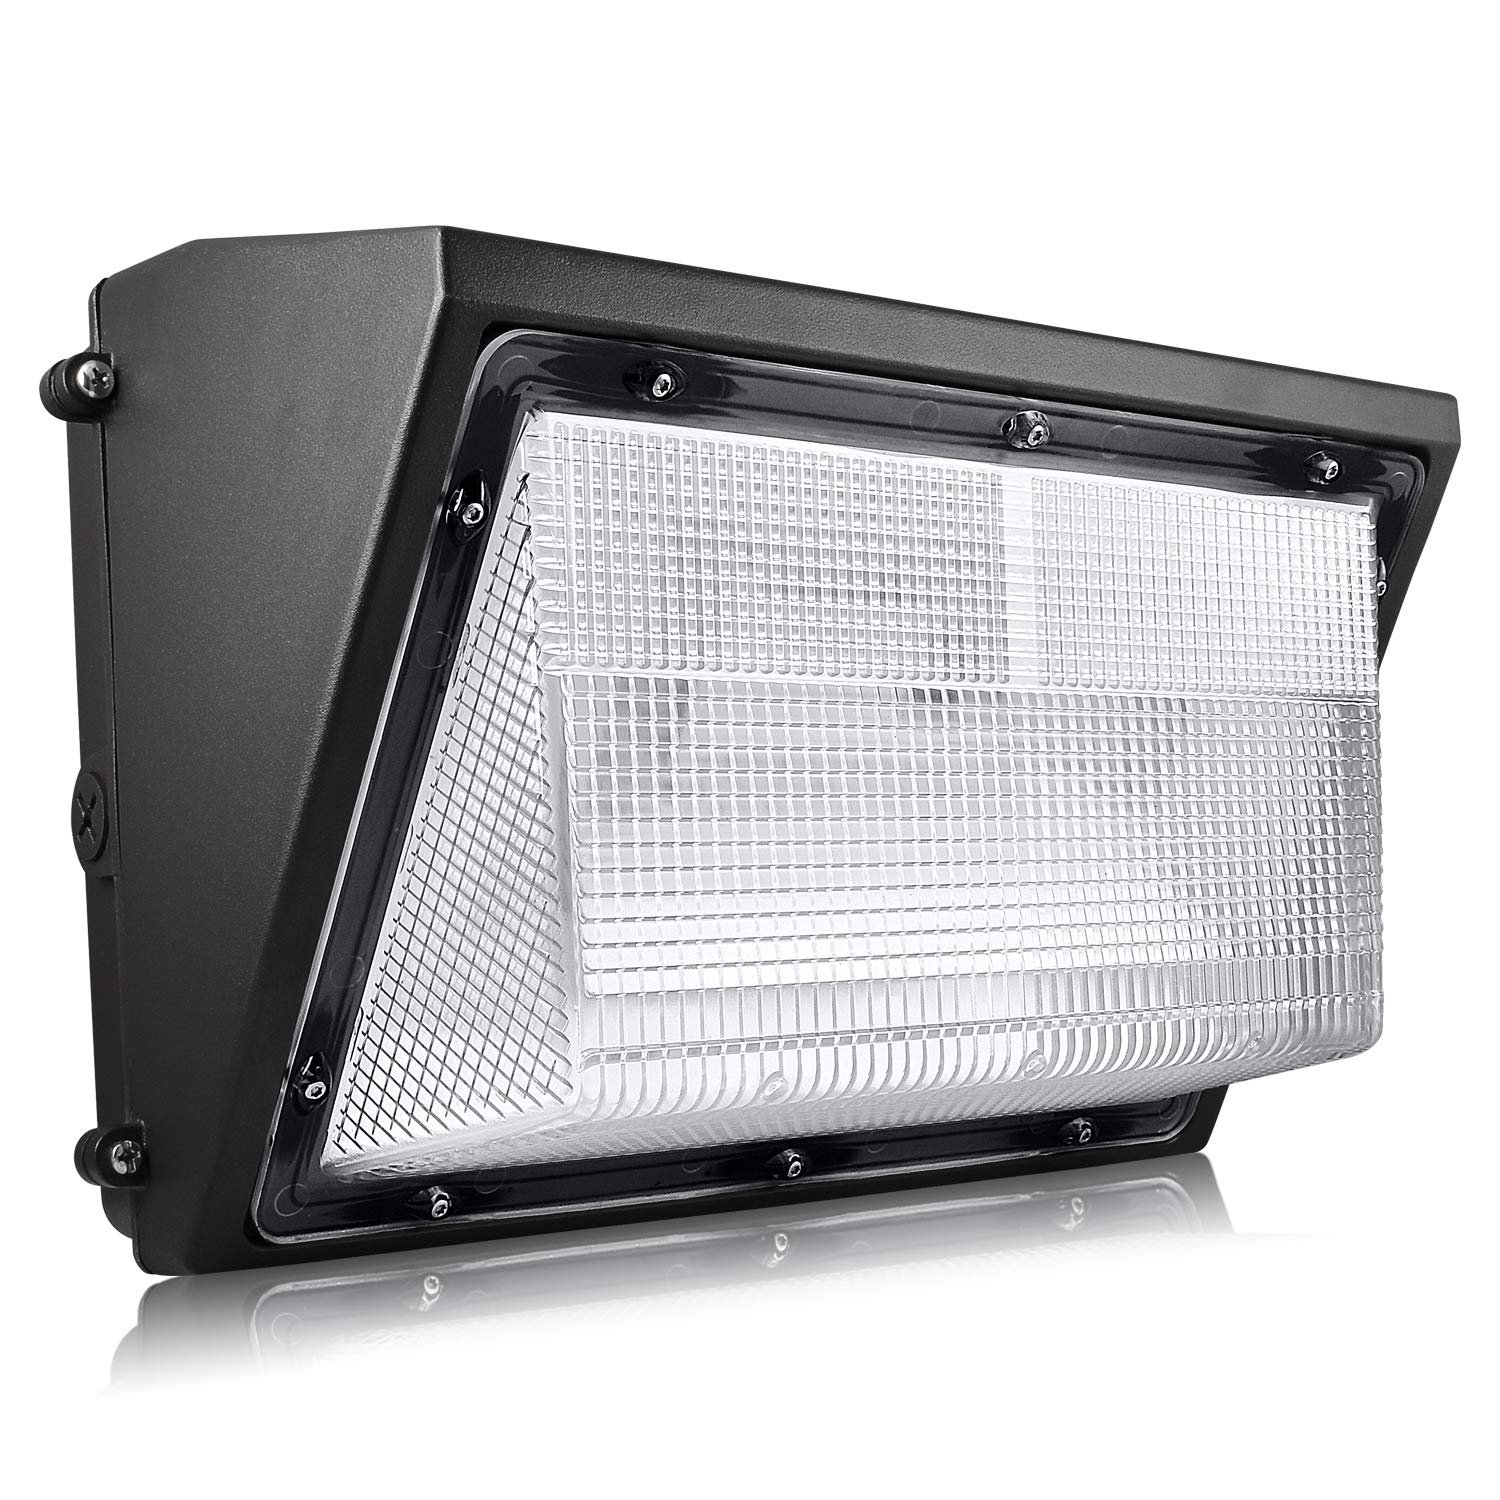 Details about luxrite 80w led wall pack light with dusk to dawn photocell 9450lm 5000k ip65